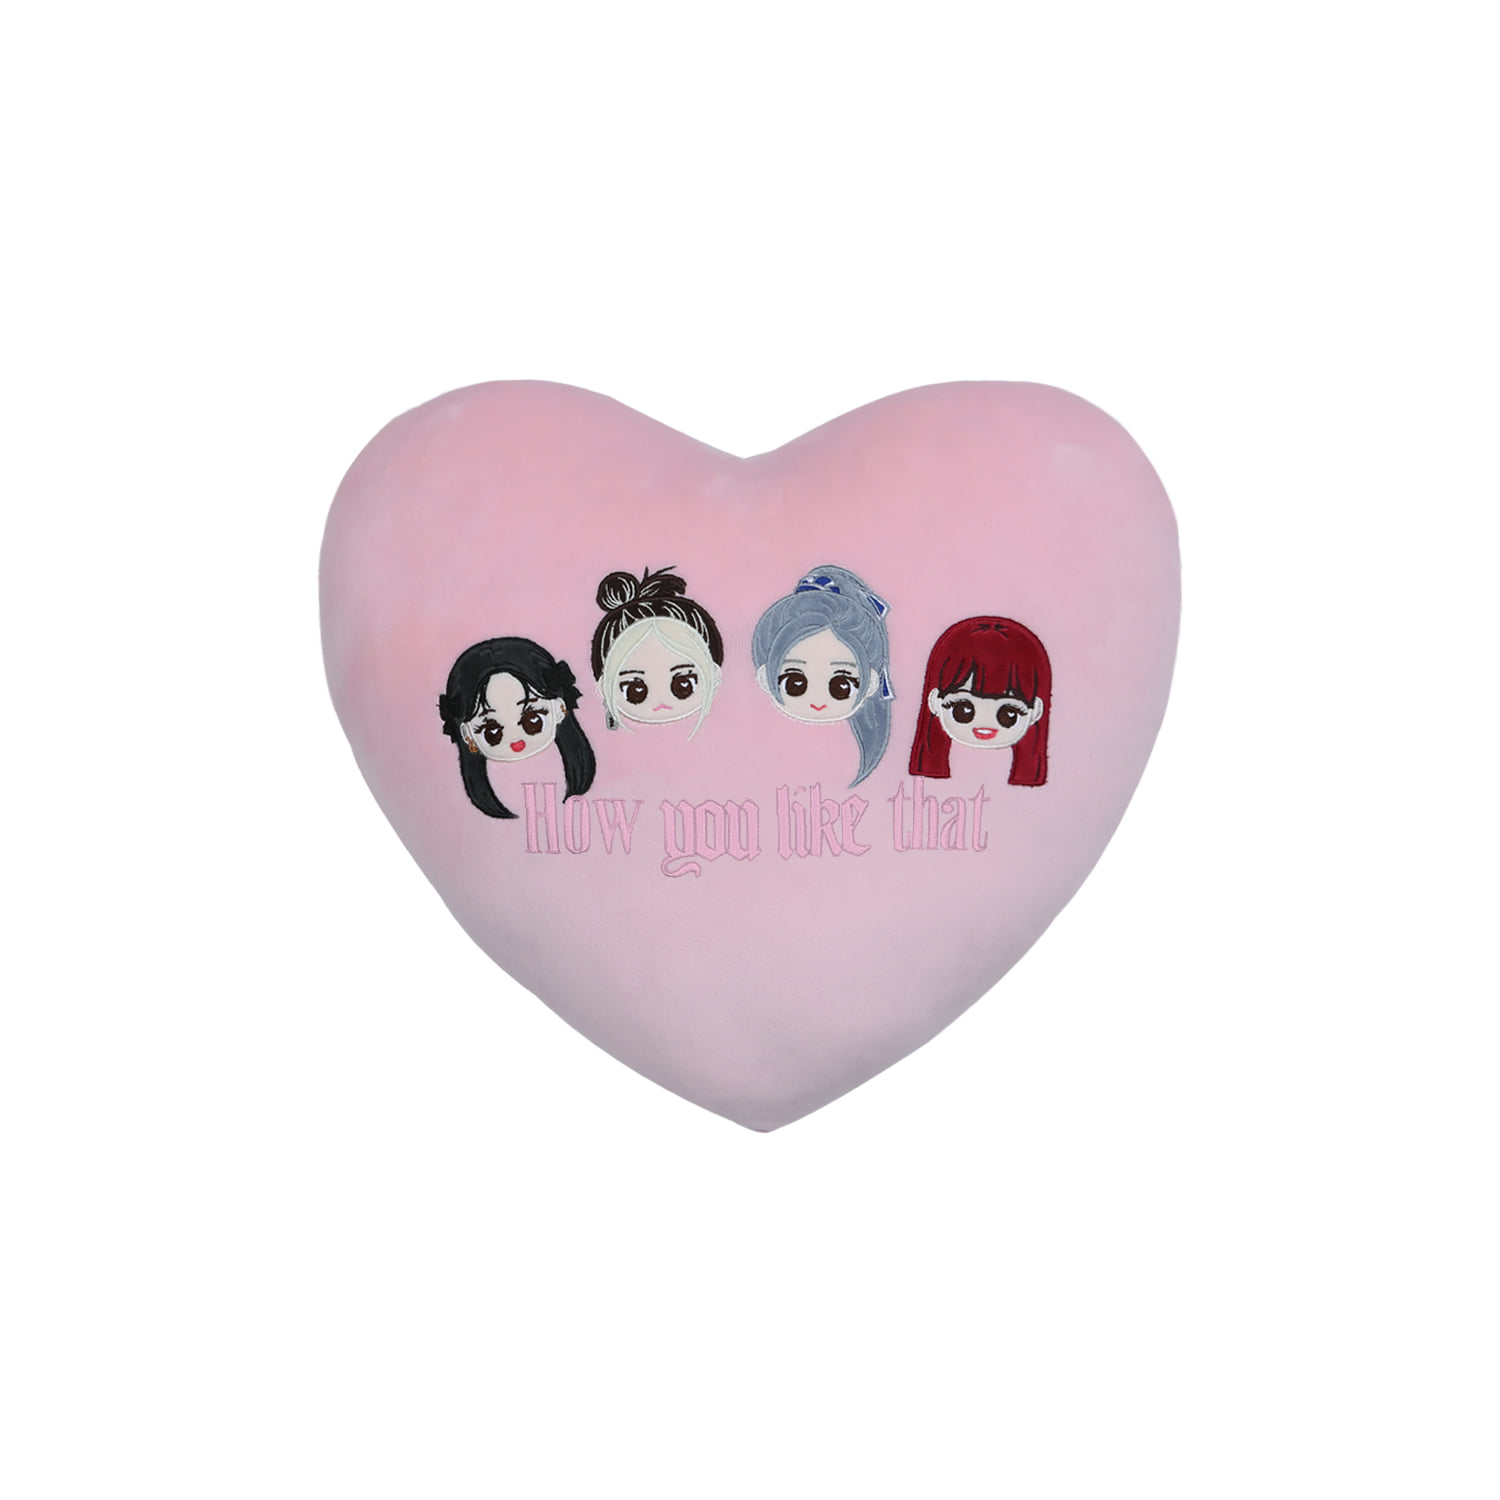 [H.Y.L.T] BLACKPINK CHARACTER HEART CUSHION